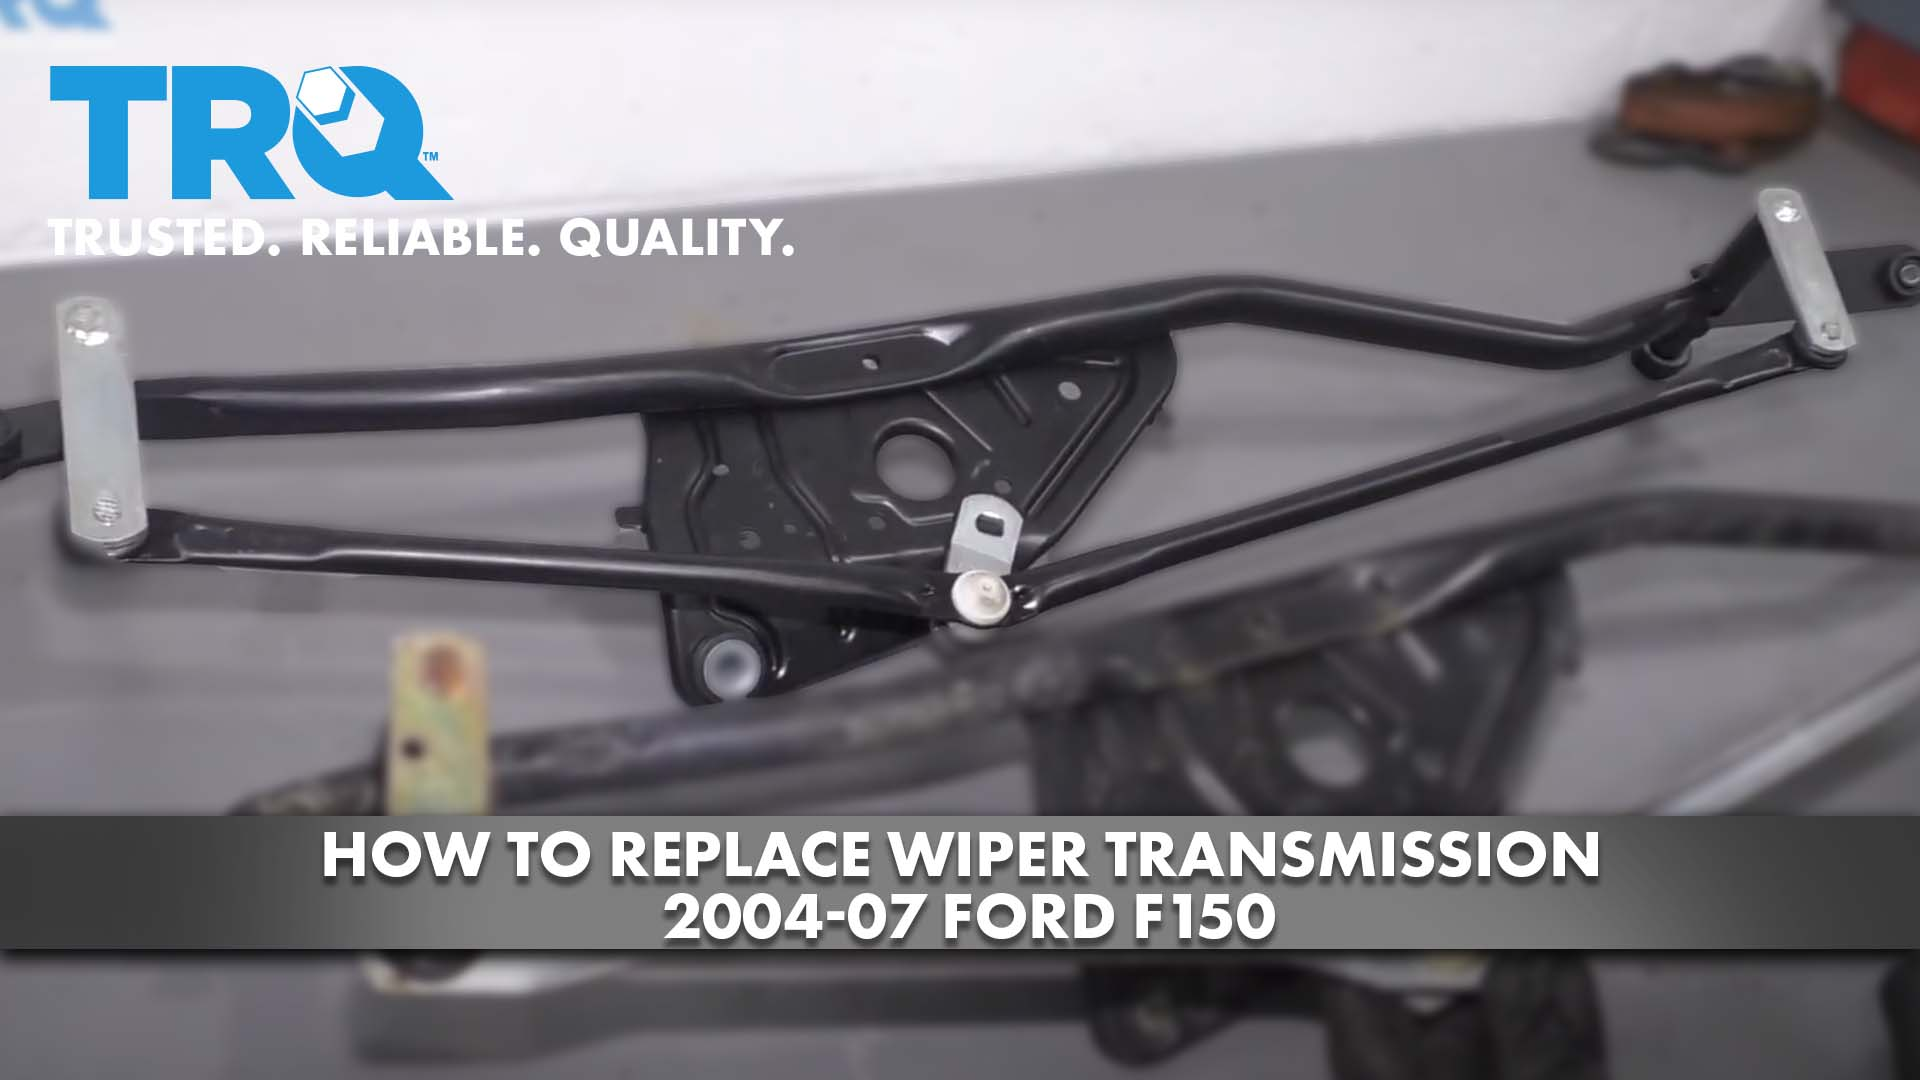 How to Replace Wiper Transmission 2004-07 Ford F150